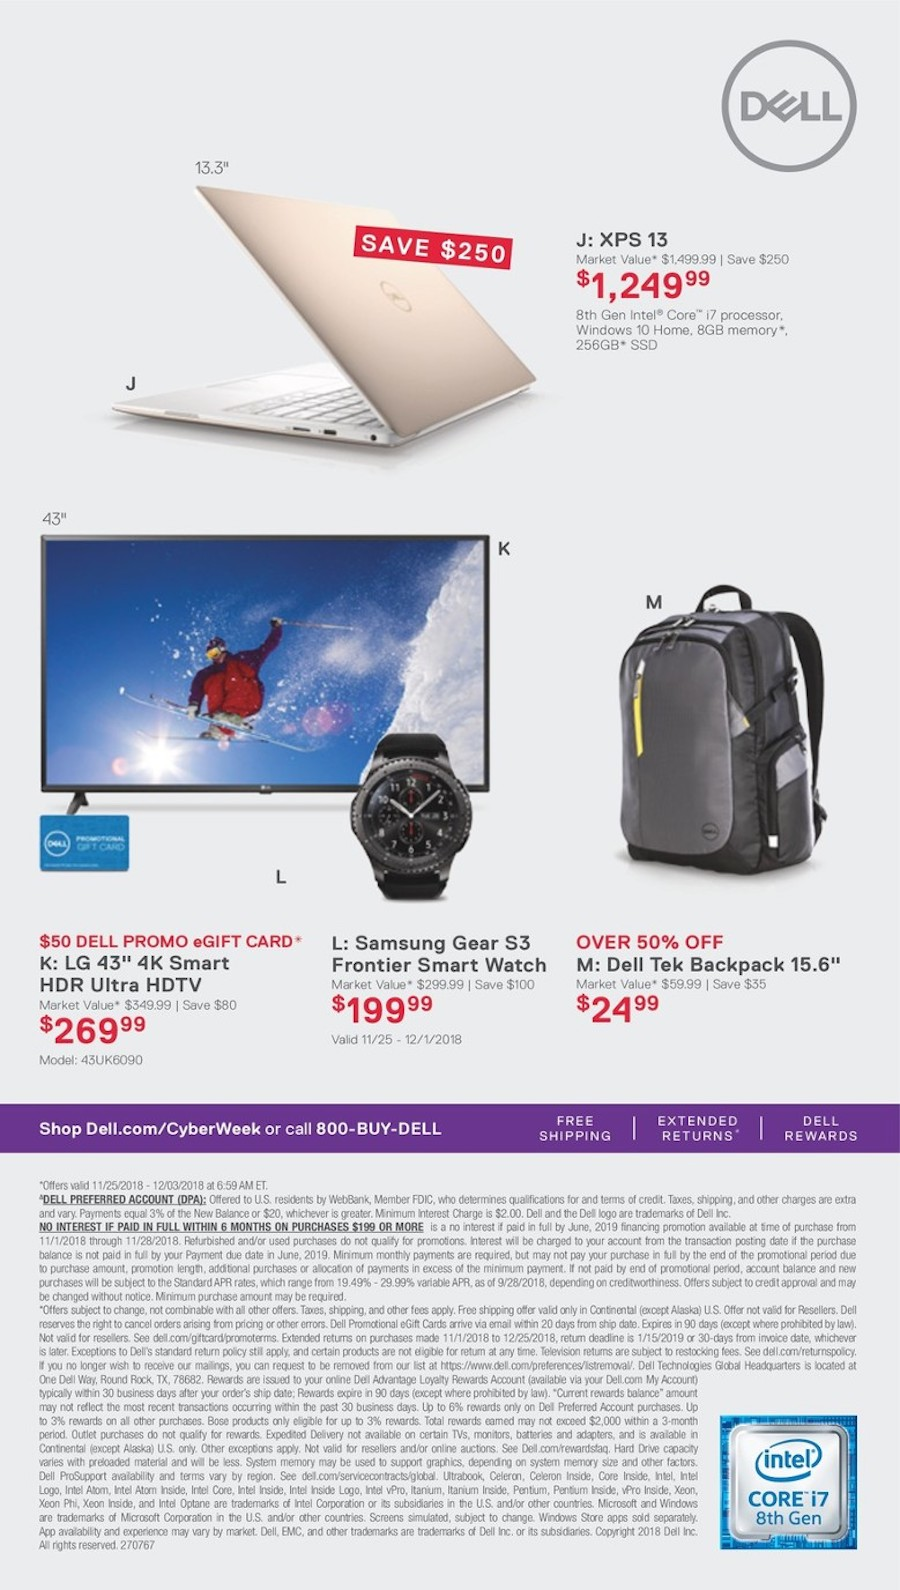 Laptop / HDTV / Smartwatch